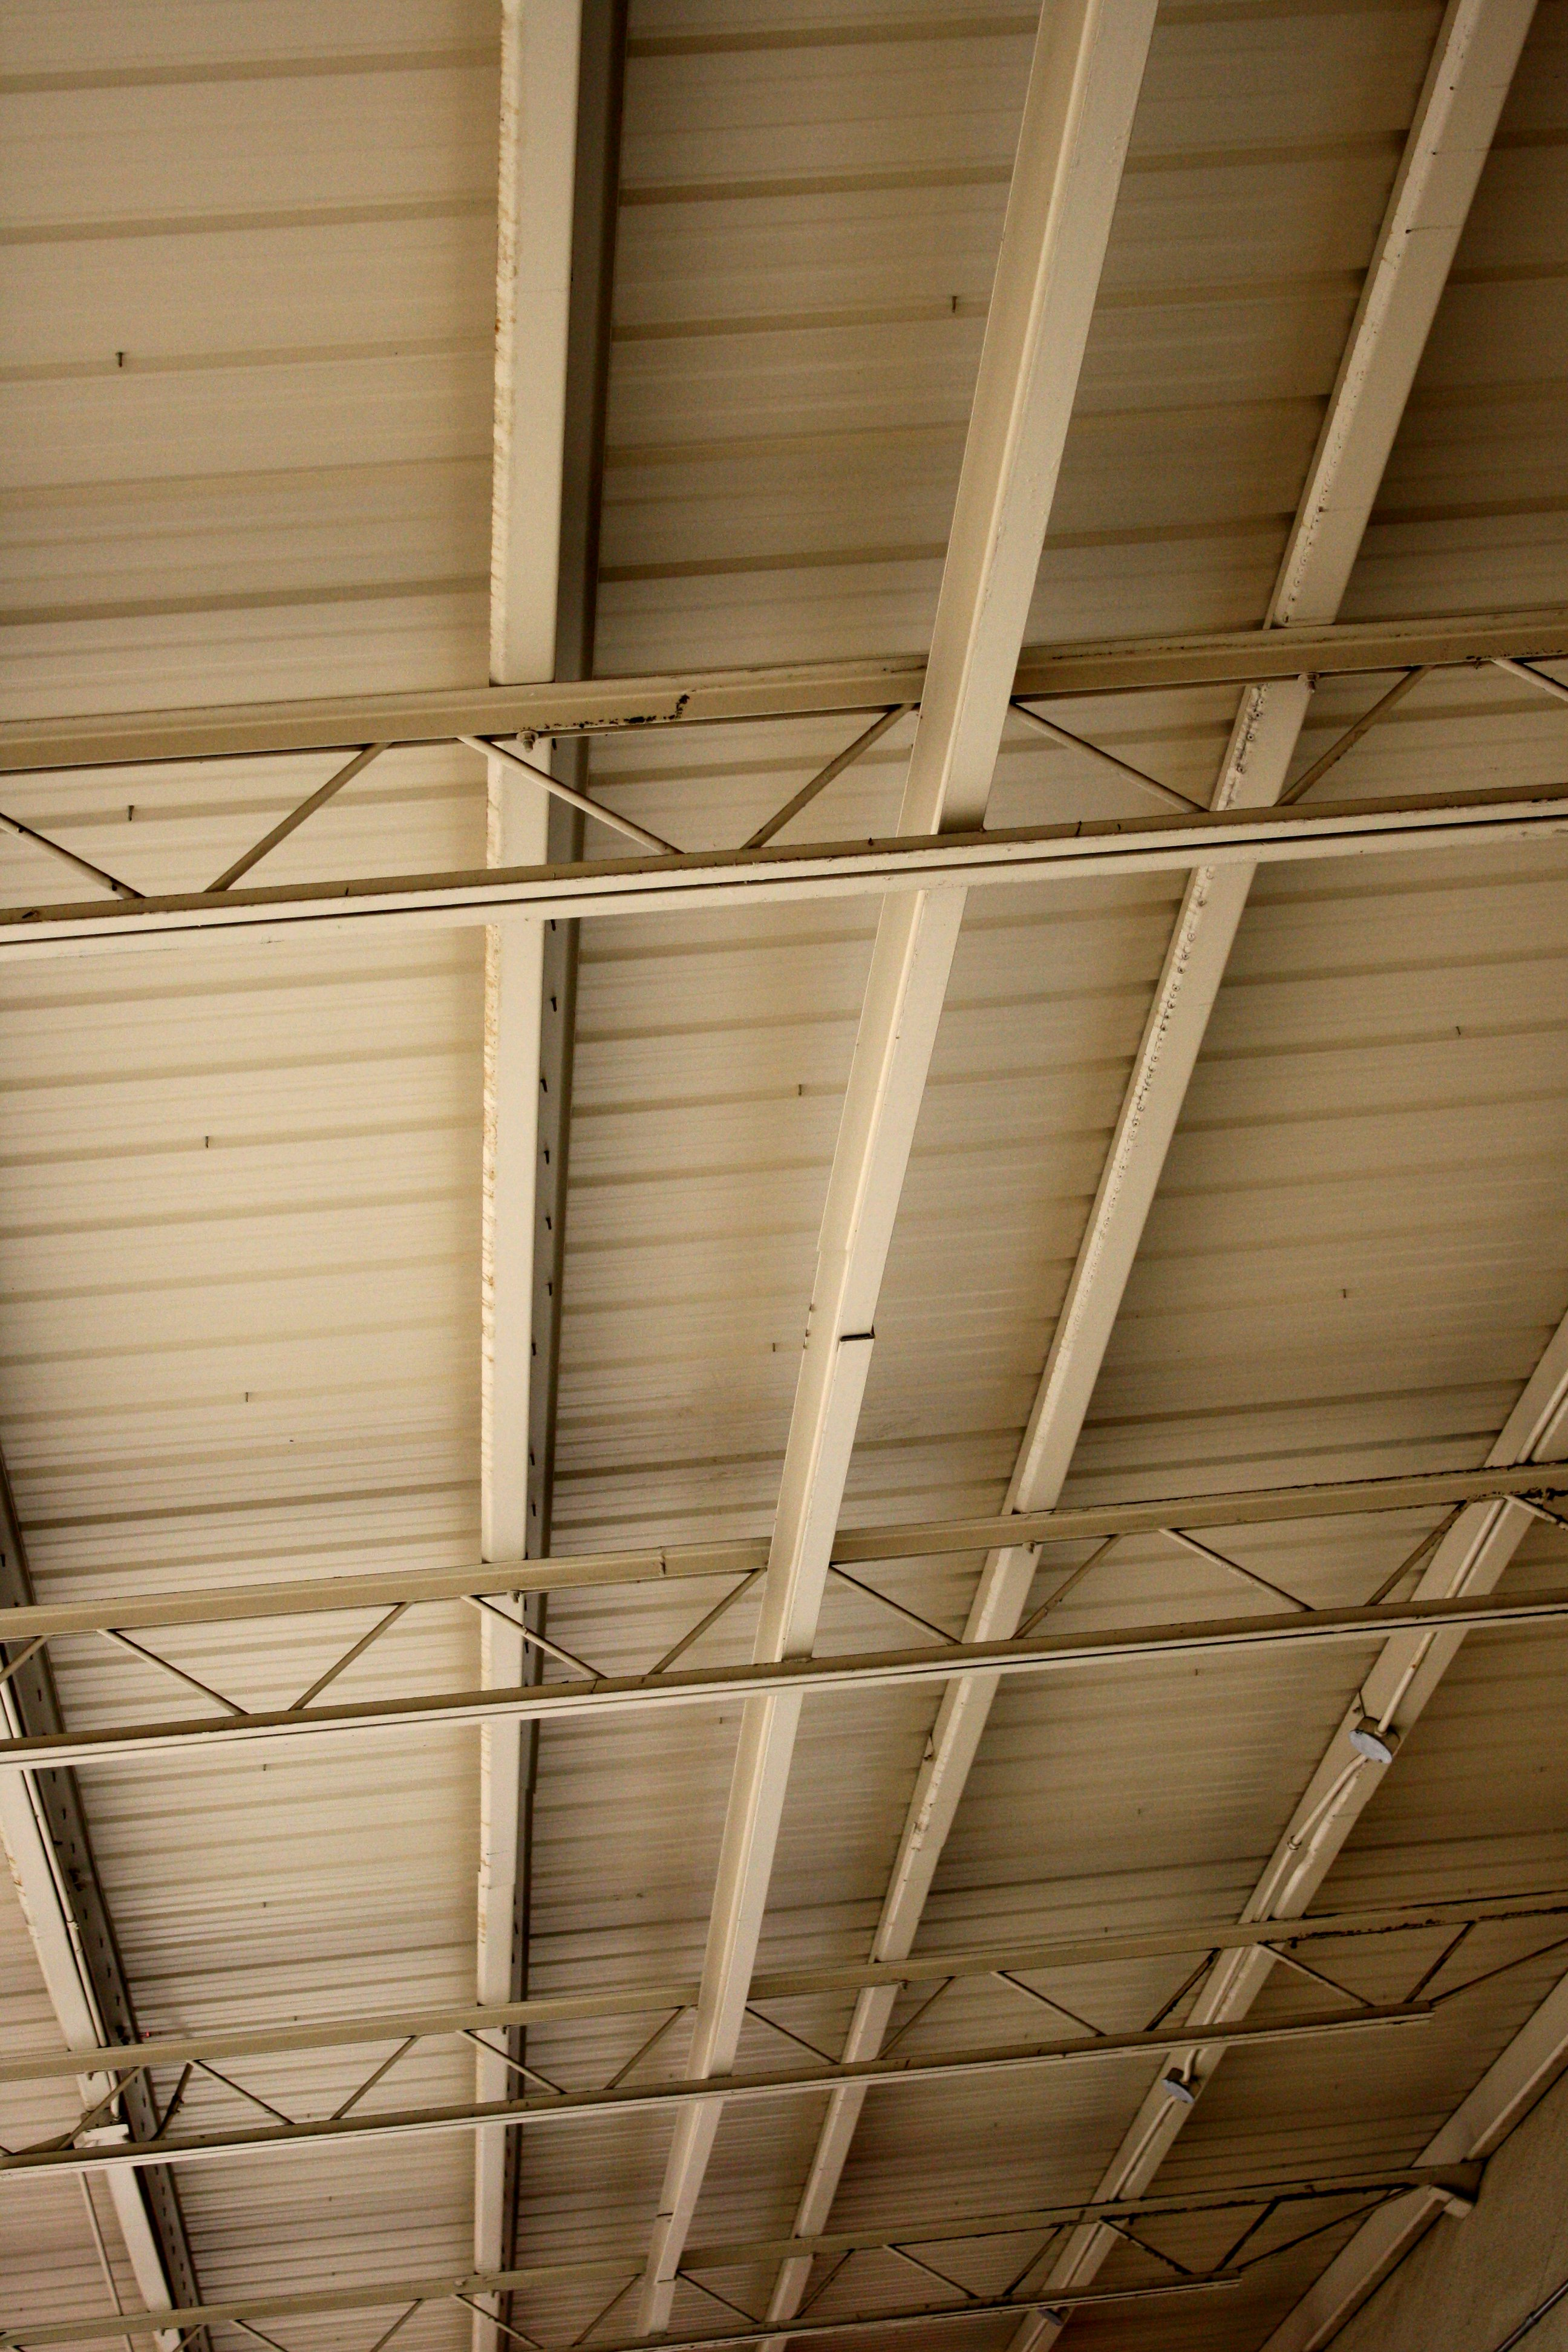 Underside Of Metal Roof With Support Beams And Girders